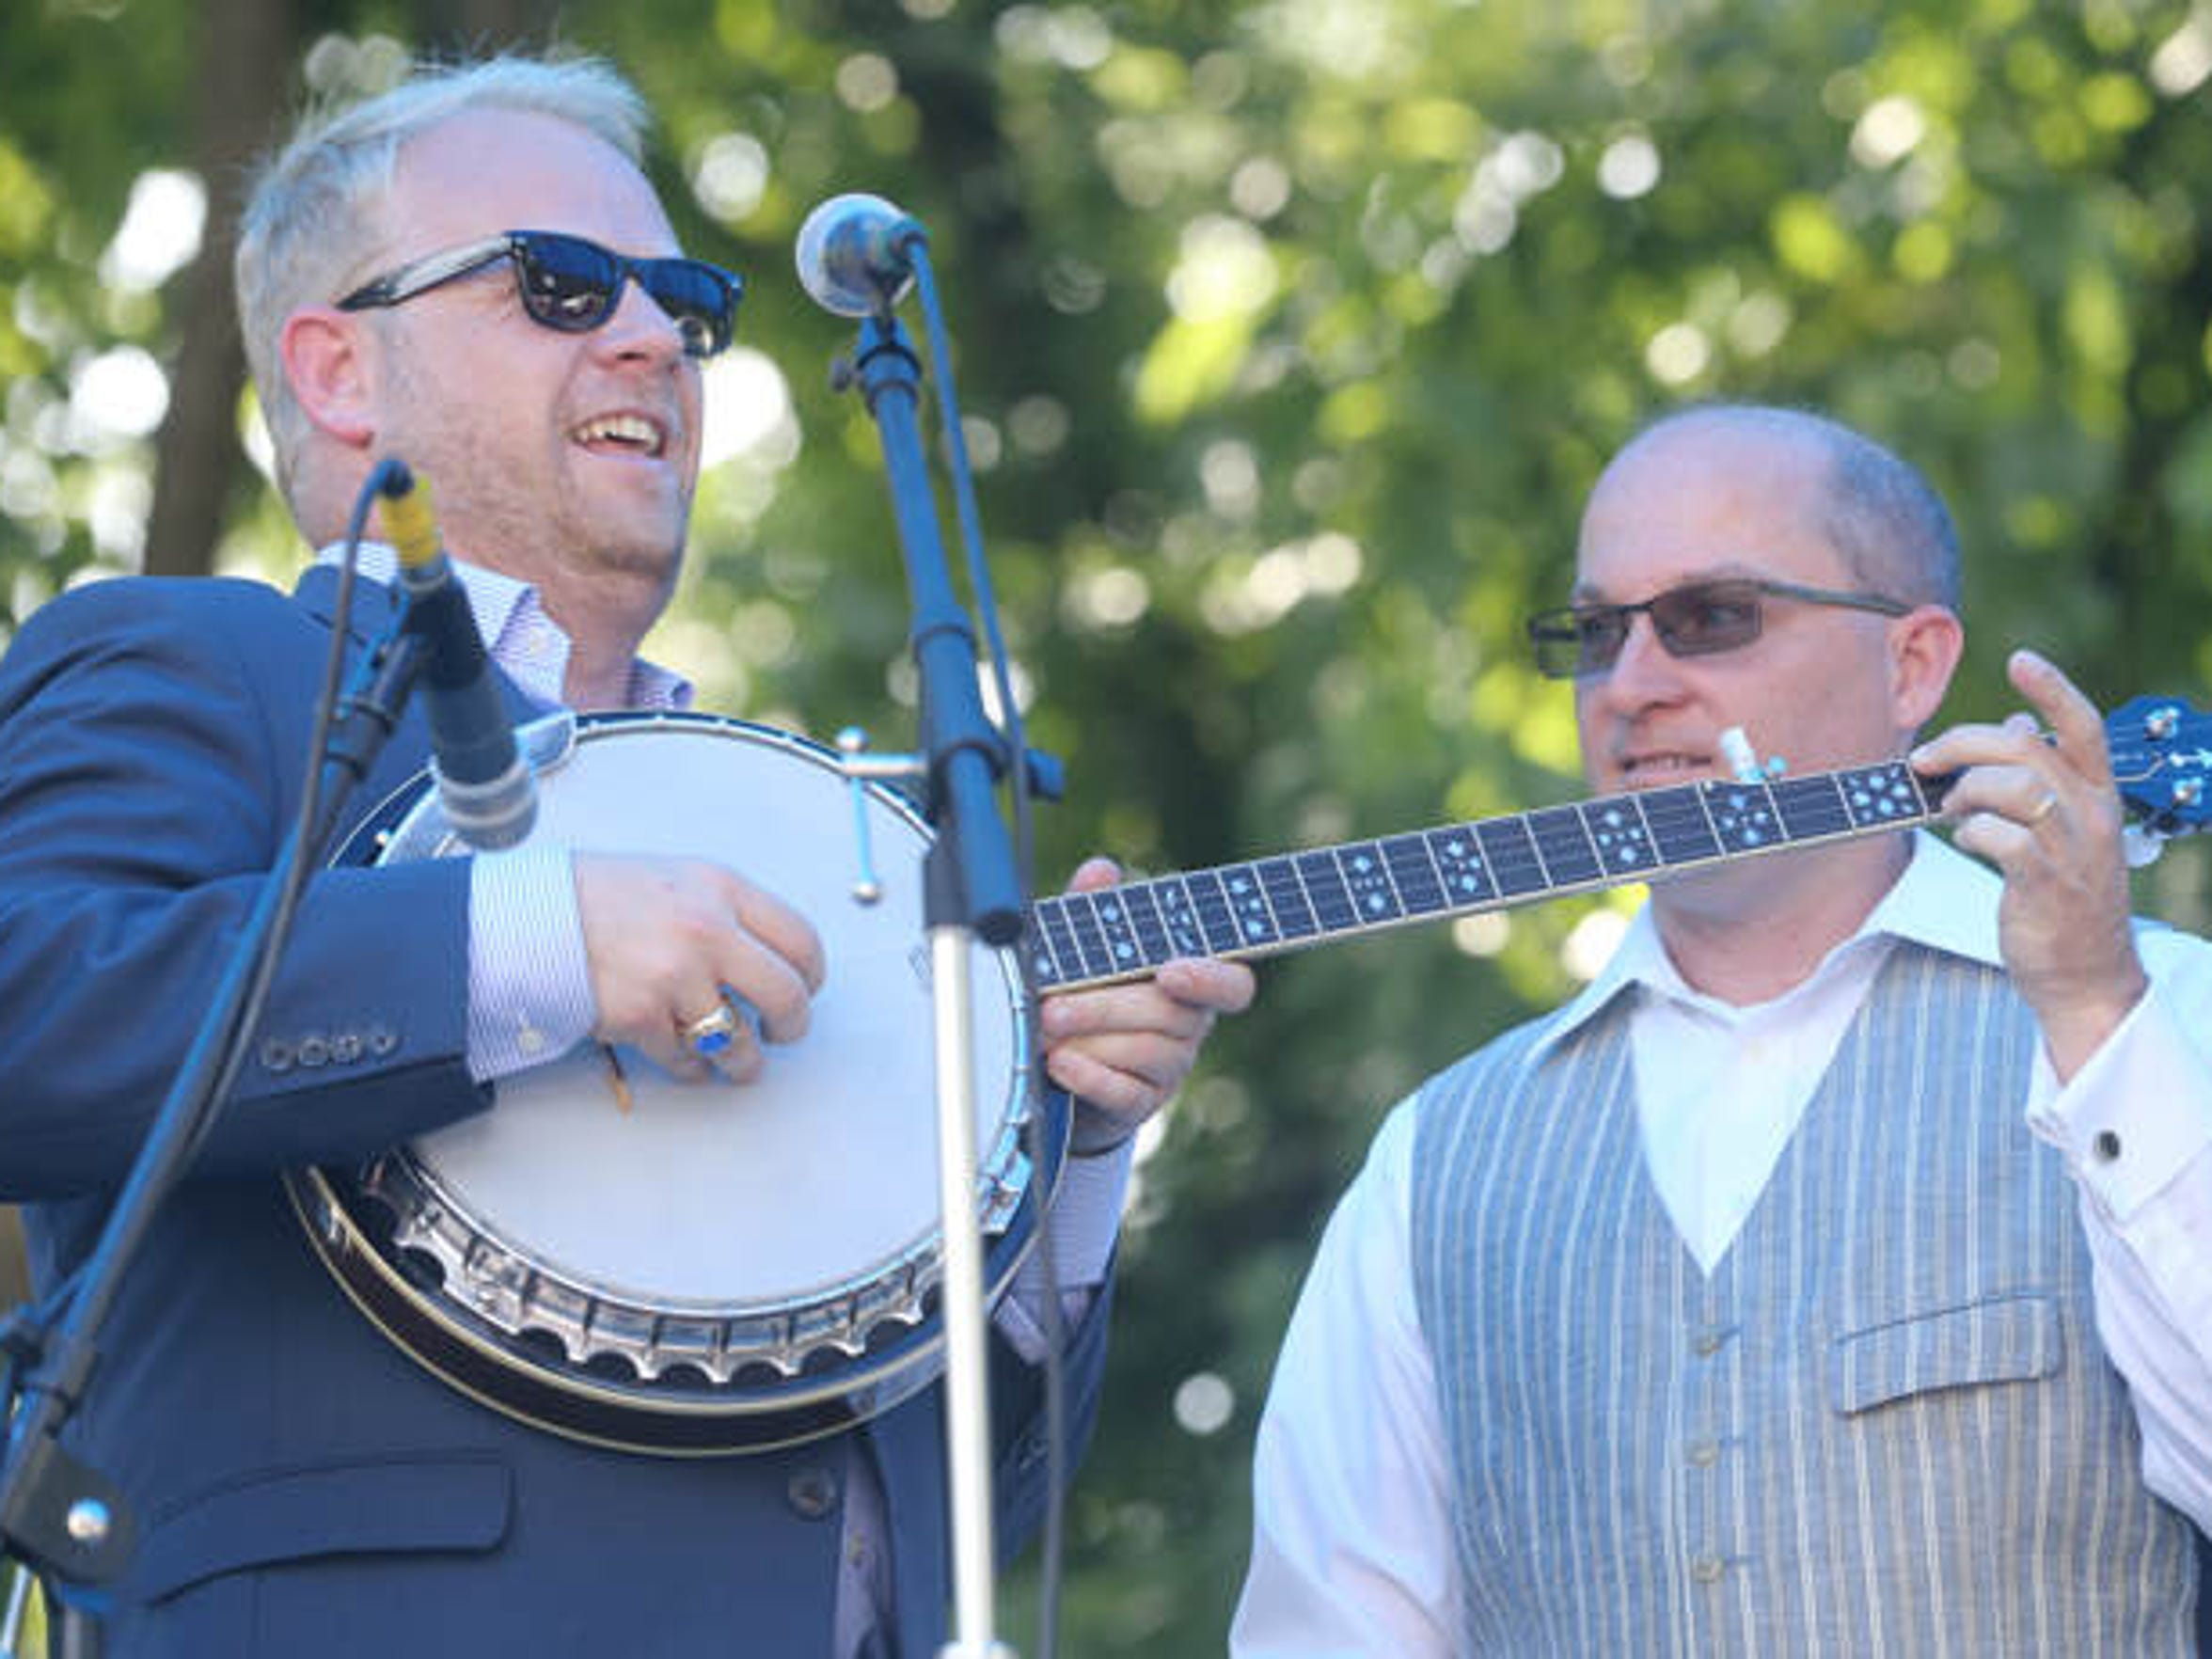 Dailey & Vincent were the Heritage Award winners and headline act on the second day of Uncle Dave Macon Days, on Saturday, July 12, 2014.